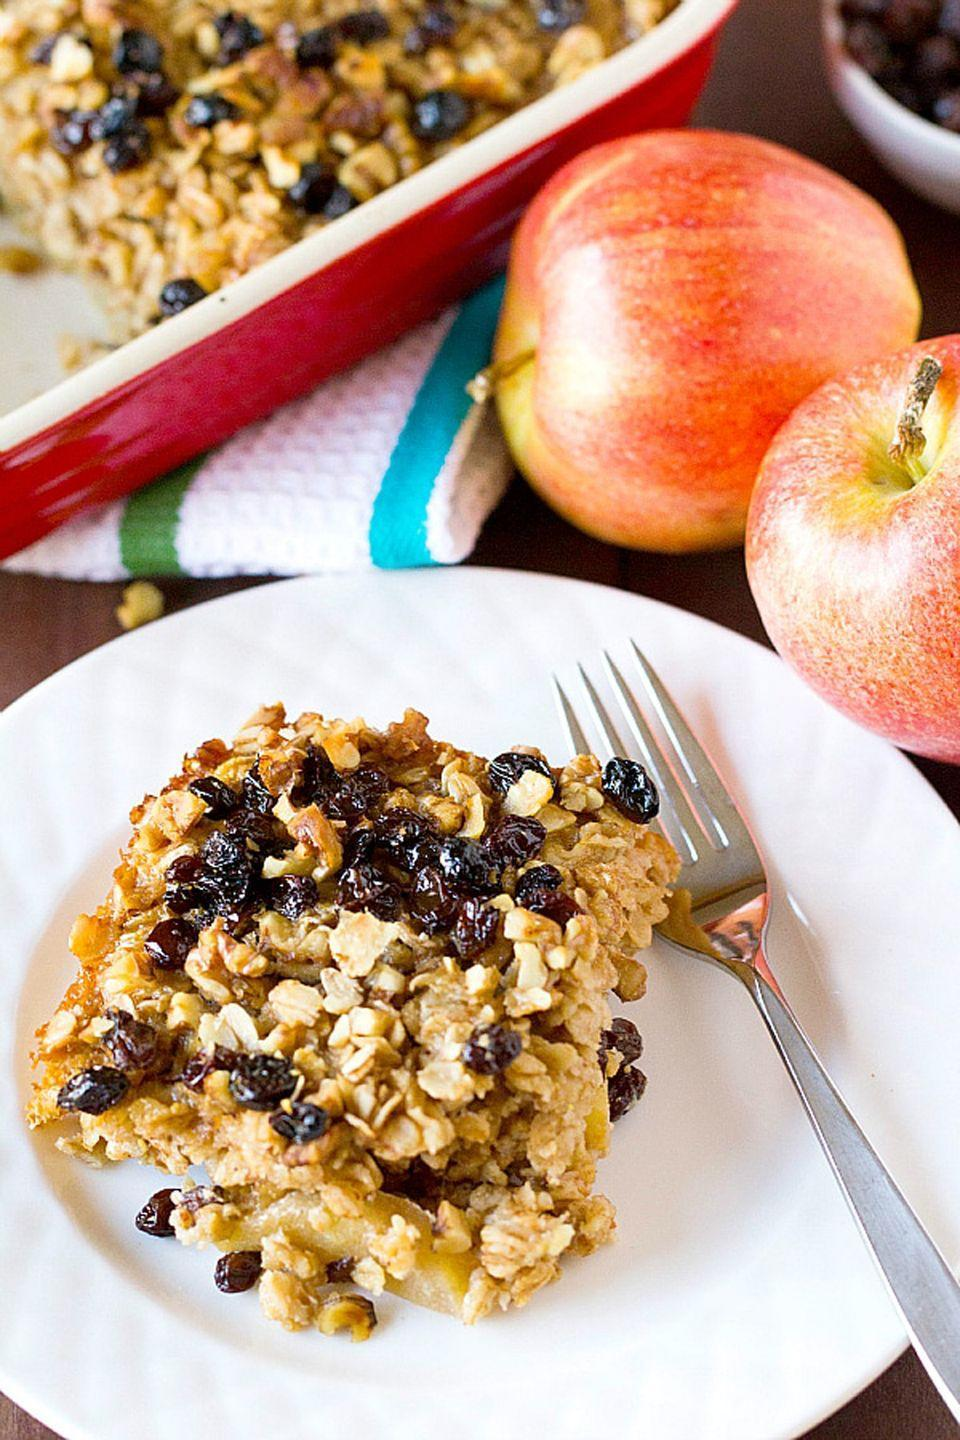 """<p>Whip up a big pan of warm, baked oatmeal big enough to serve the entire family.</p><p><strong>Get the recipe at <a href=""""http://www.browneyedbaker.com/apple-cinnamon-raisin-walnut-baked-oatmeal/"""" rel=""""nofollow noopener"""" target=""""_blank"""" data-ylk=""""slk:Brown Eyed Baker"""" class=""""link rapid-noclick-resp"""">Brown Eyed Baker</a>.</strong></p>"""